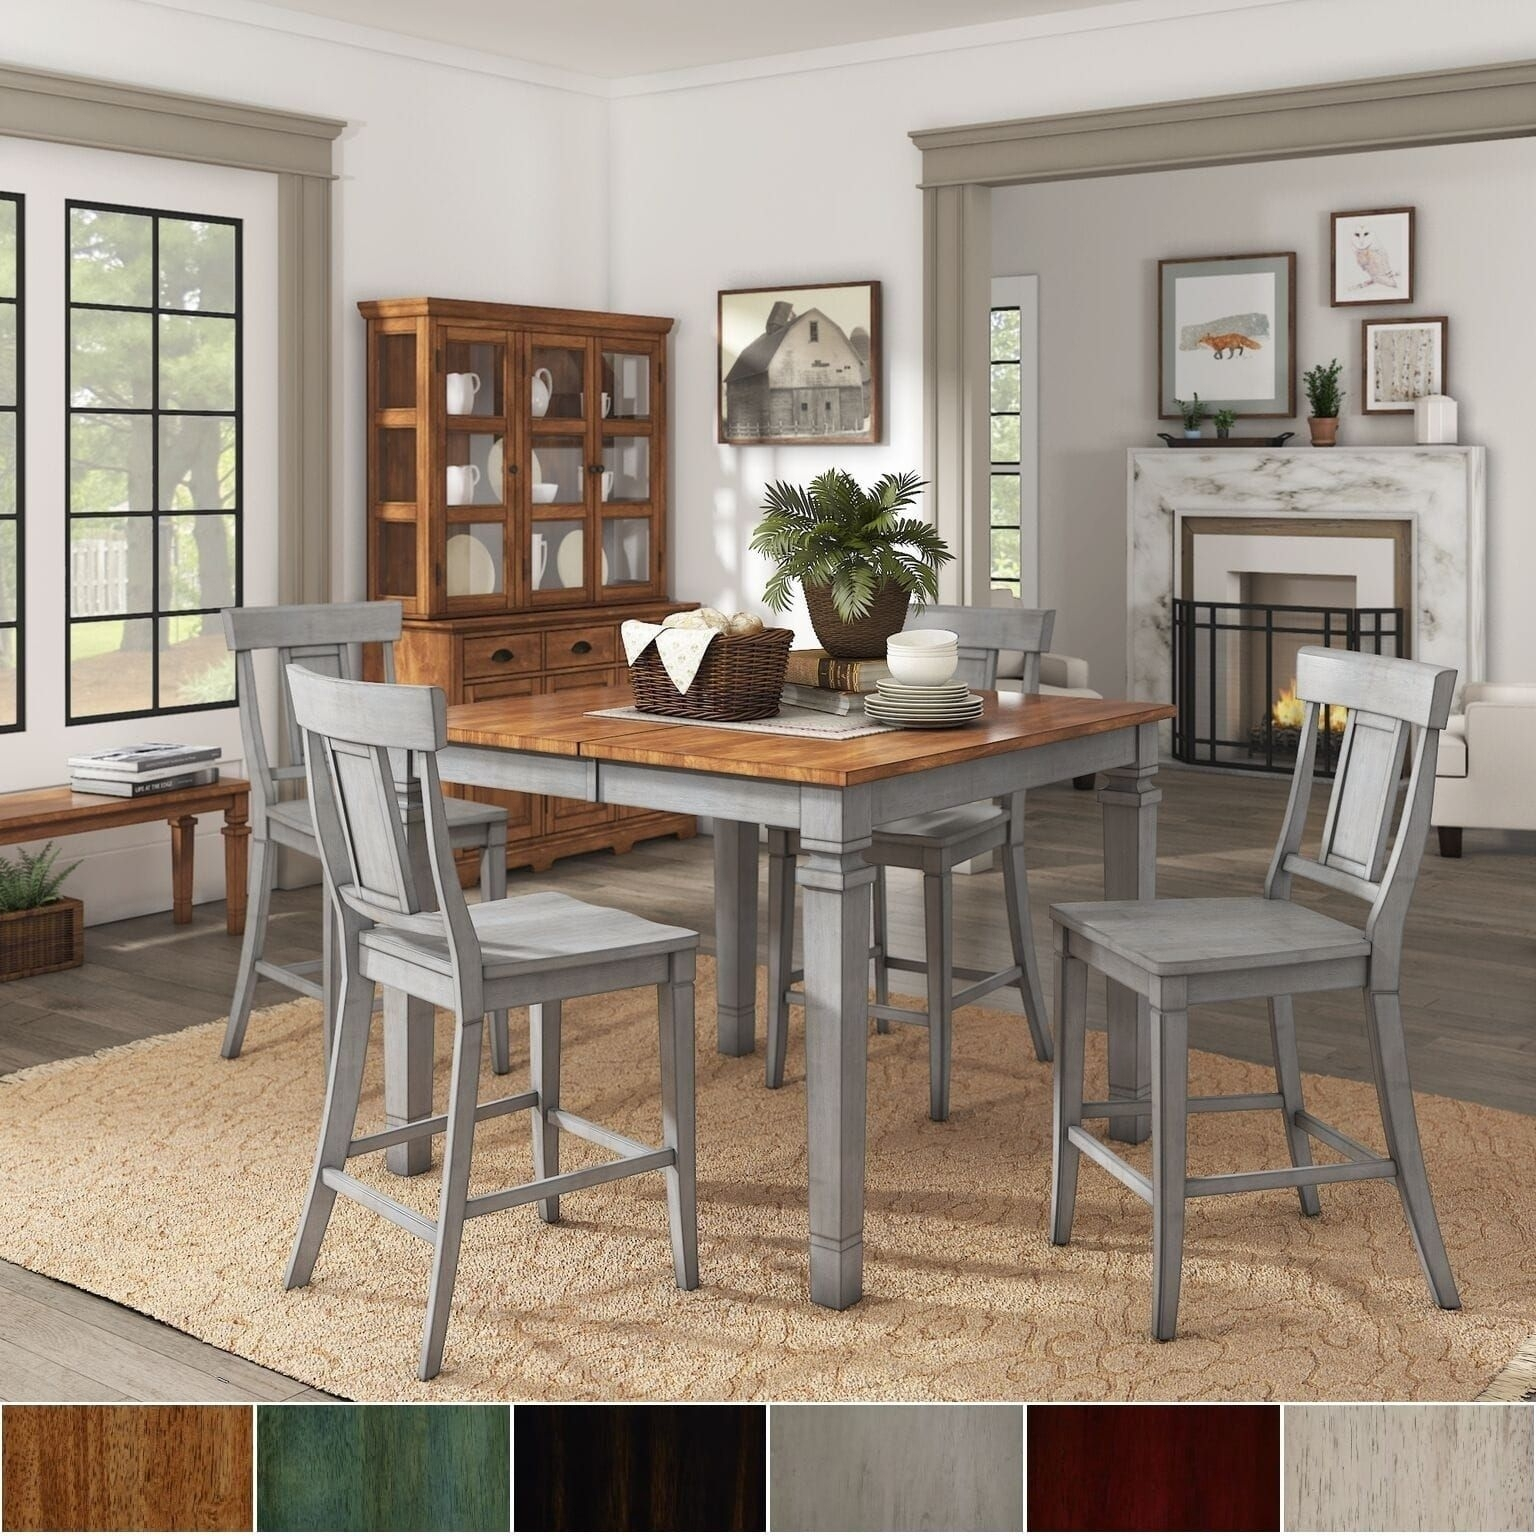 Elena Antique Grey Extendable Counter Height Dining Set – Panel Back Within Latest Jameson Grey 5 Piece Counter Sets (Image 5 of 20)